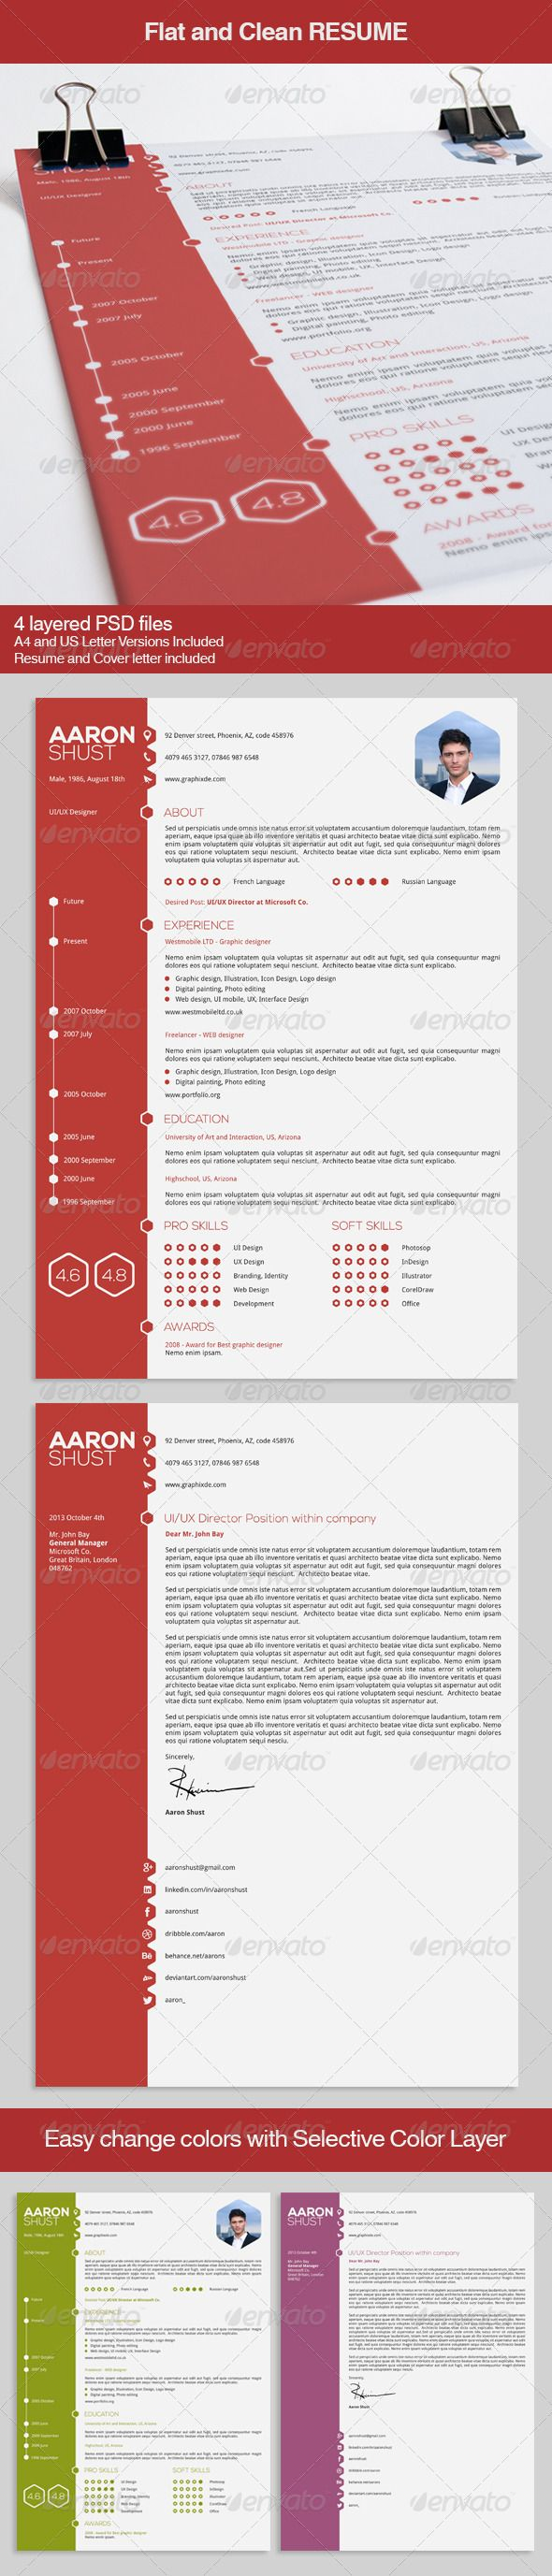 Flat and Clean Resume GraphicRiver wwwkickresumecom 101